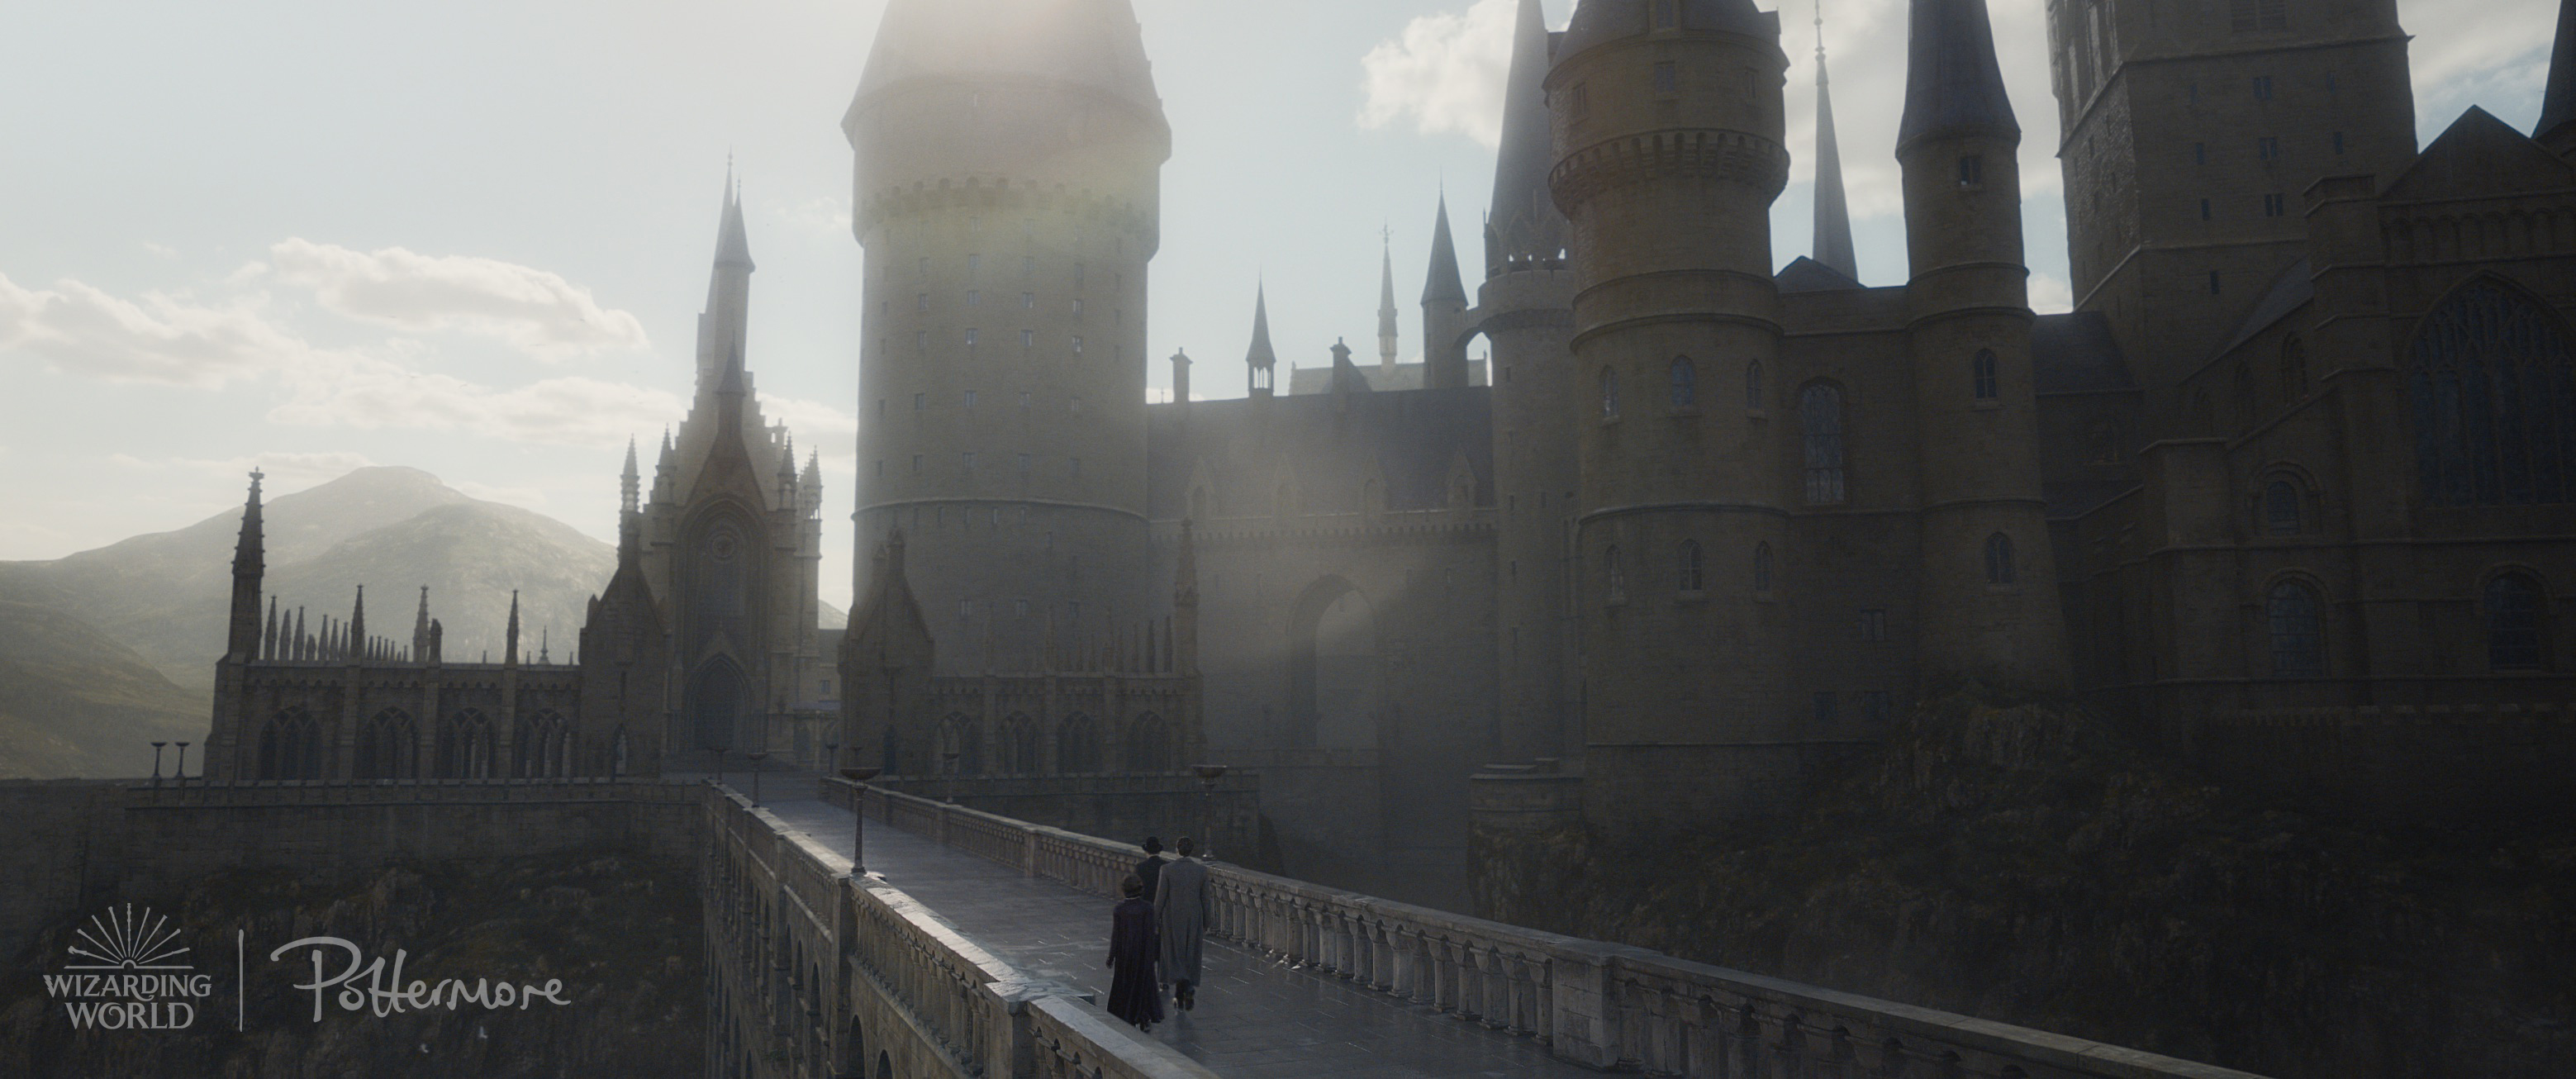 Hogwarts castle in the Fantastic Beasts: Crimes of Grindelwald trailer